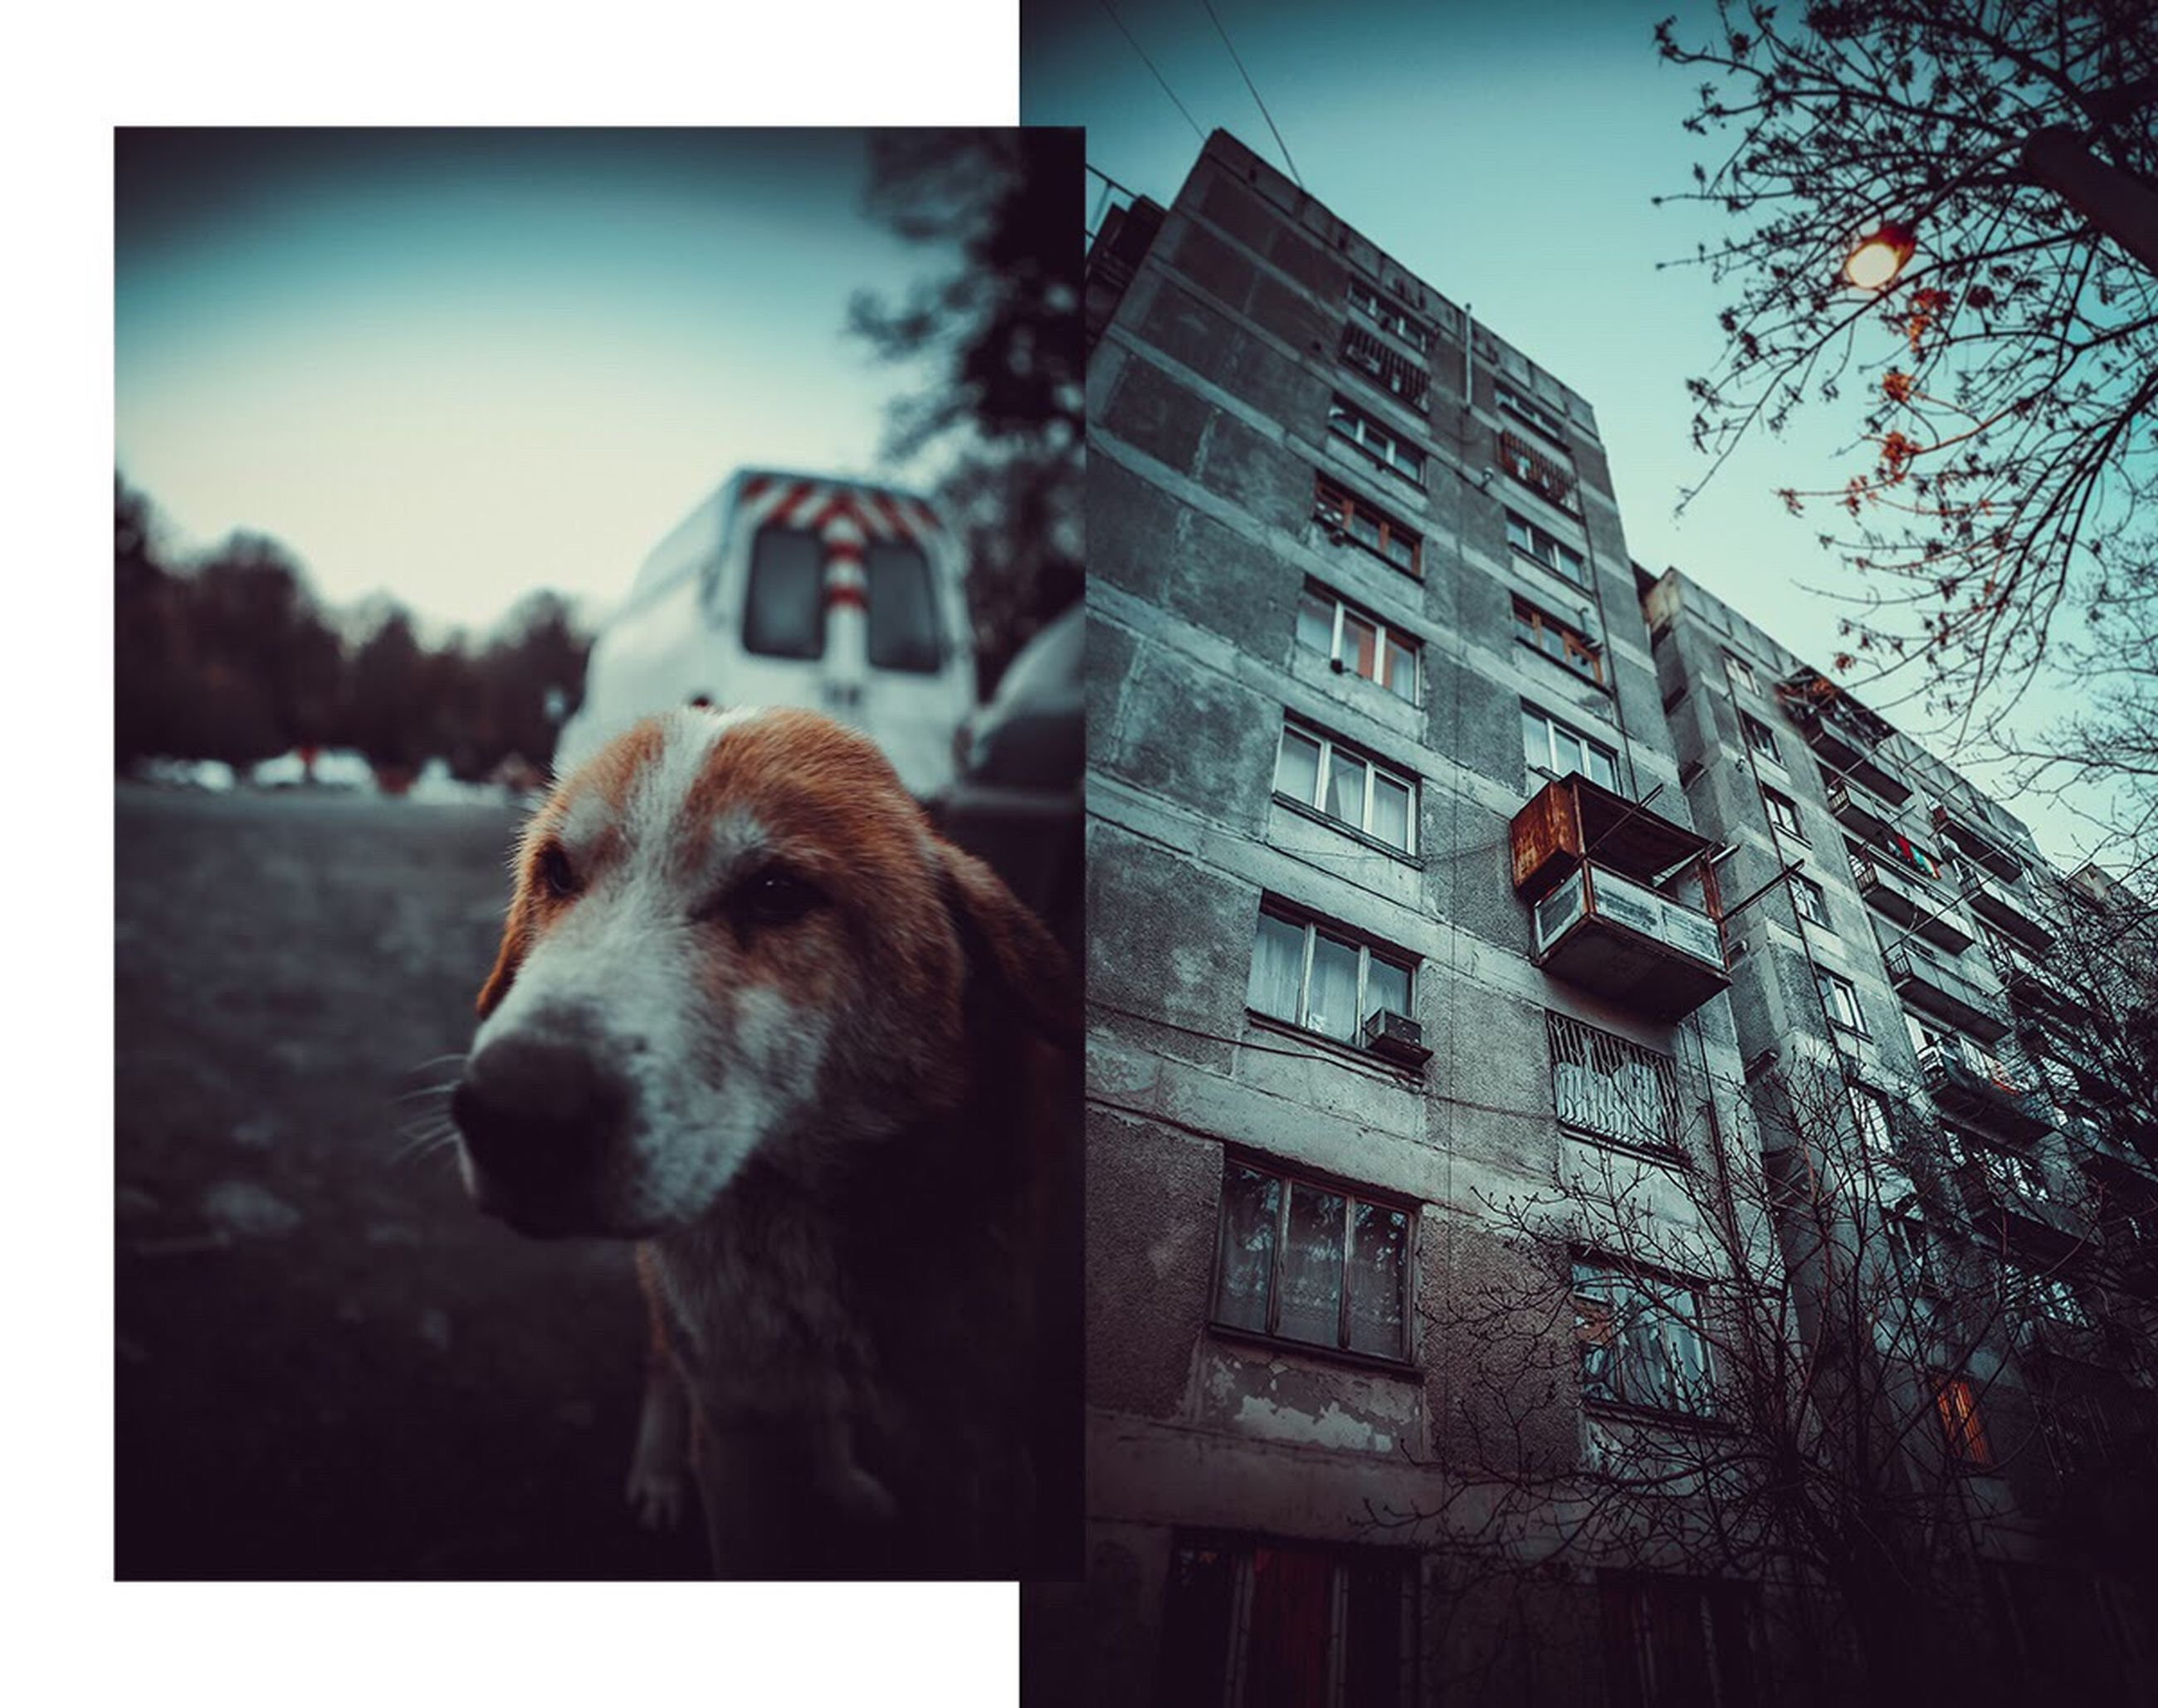 animal themes, one animal, building exterior, domestic animals, mammal, built structure, pets, architecture, no people, animal head, day, dog, outdoors, sky, close-up